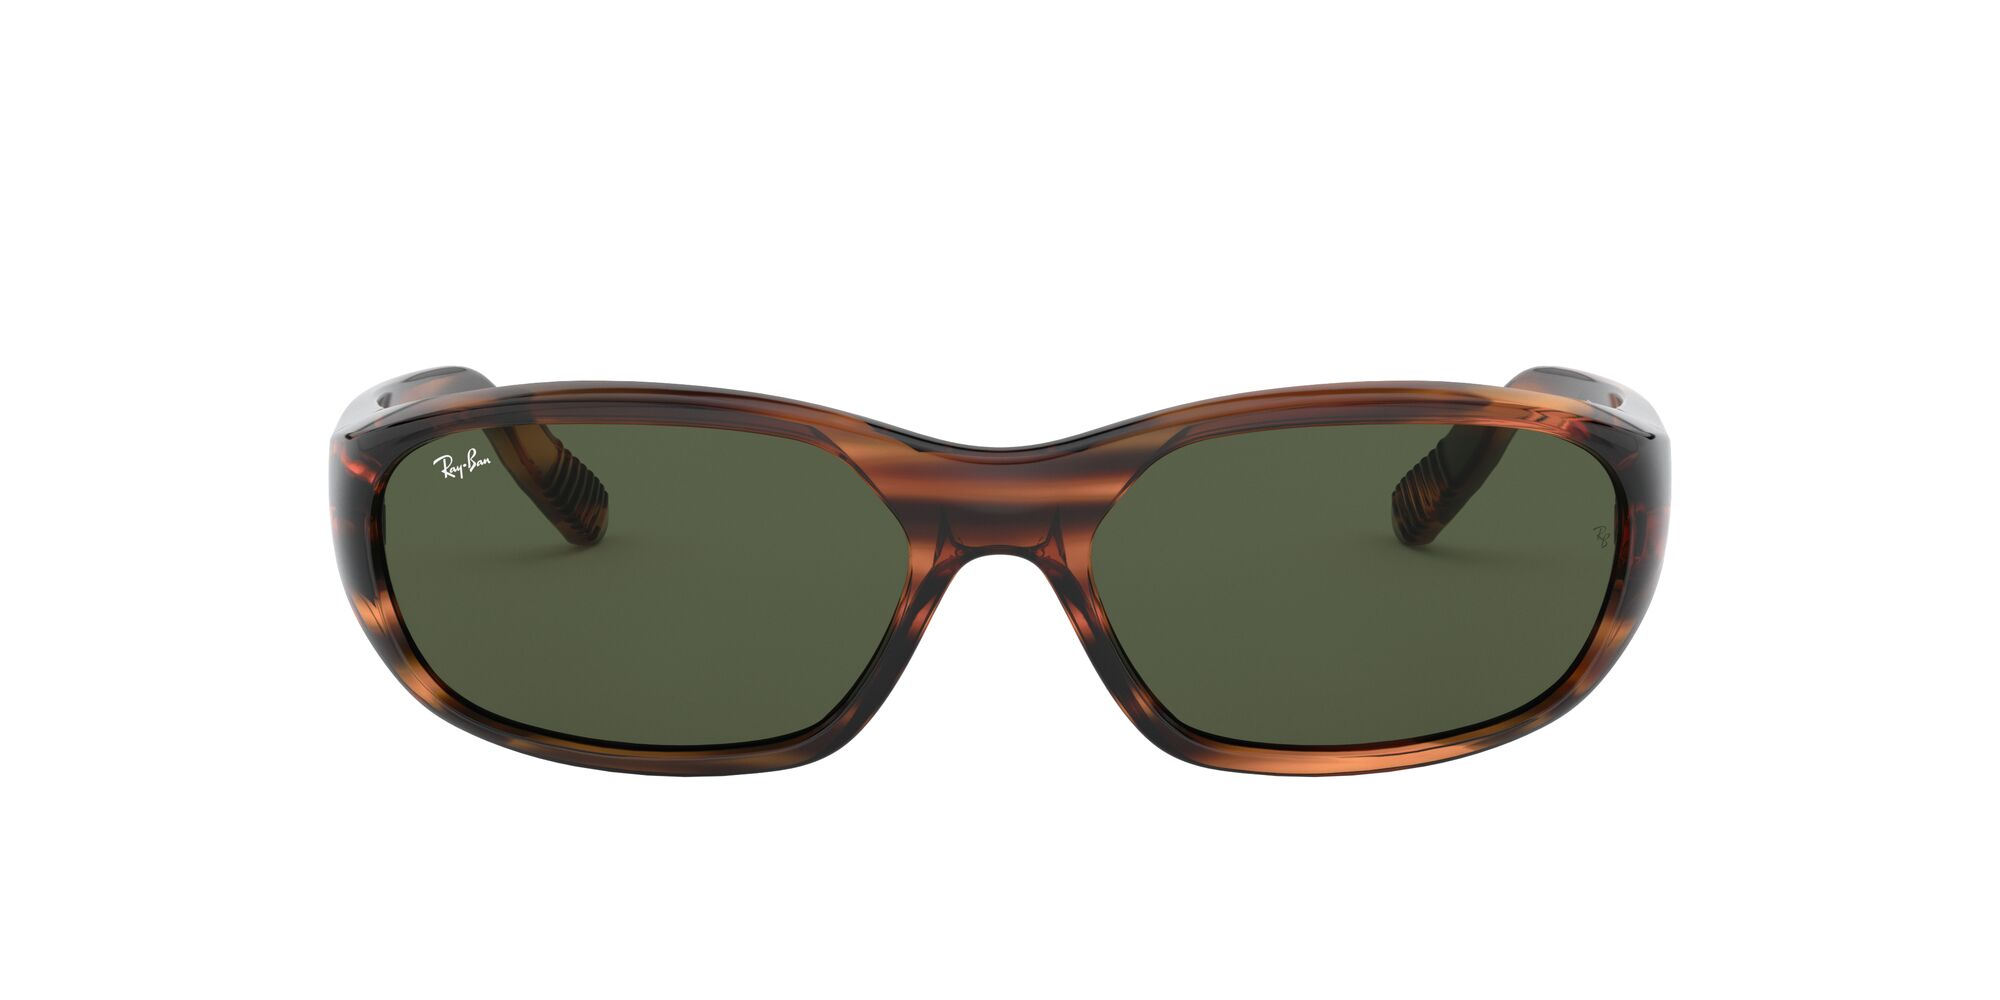 Front Ray-Ban Ray-Ban 0RB2016 820/31 57/17 Rood/Groen